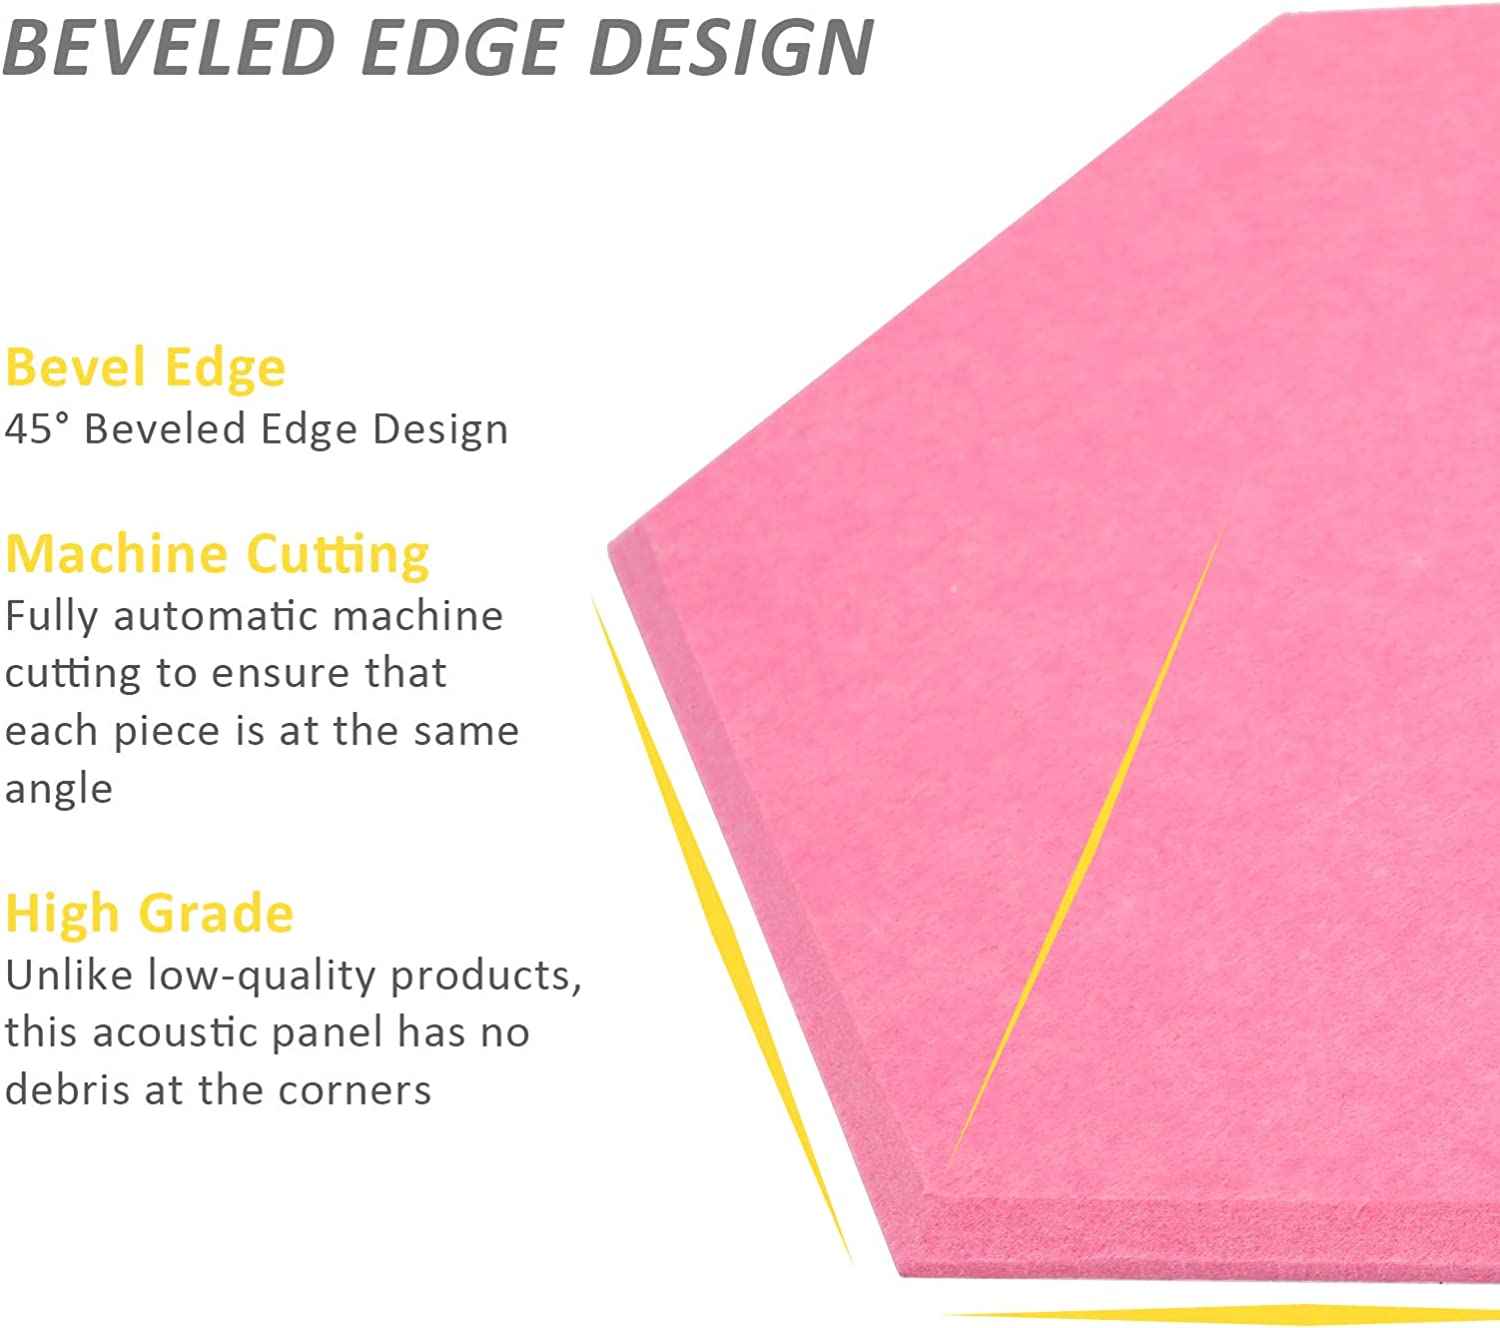 Pink 12 PCS Acoustic Panels Sound Proof Dampening Panel 14 X 13 X 0.4 Inch Wall Decor Hexagon Soundproof Padding for Home Office